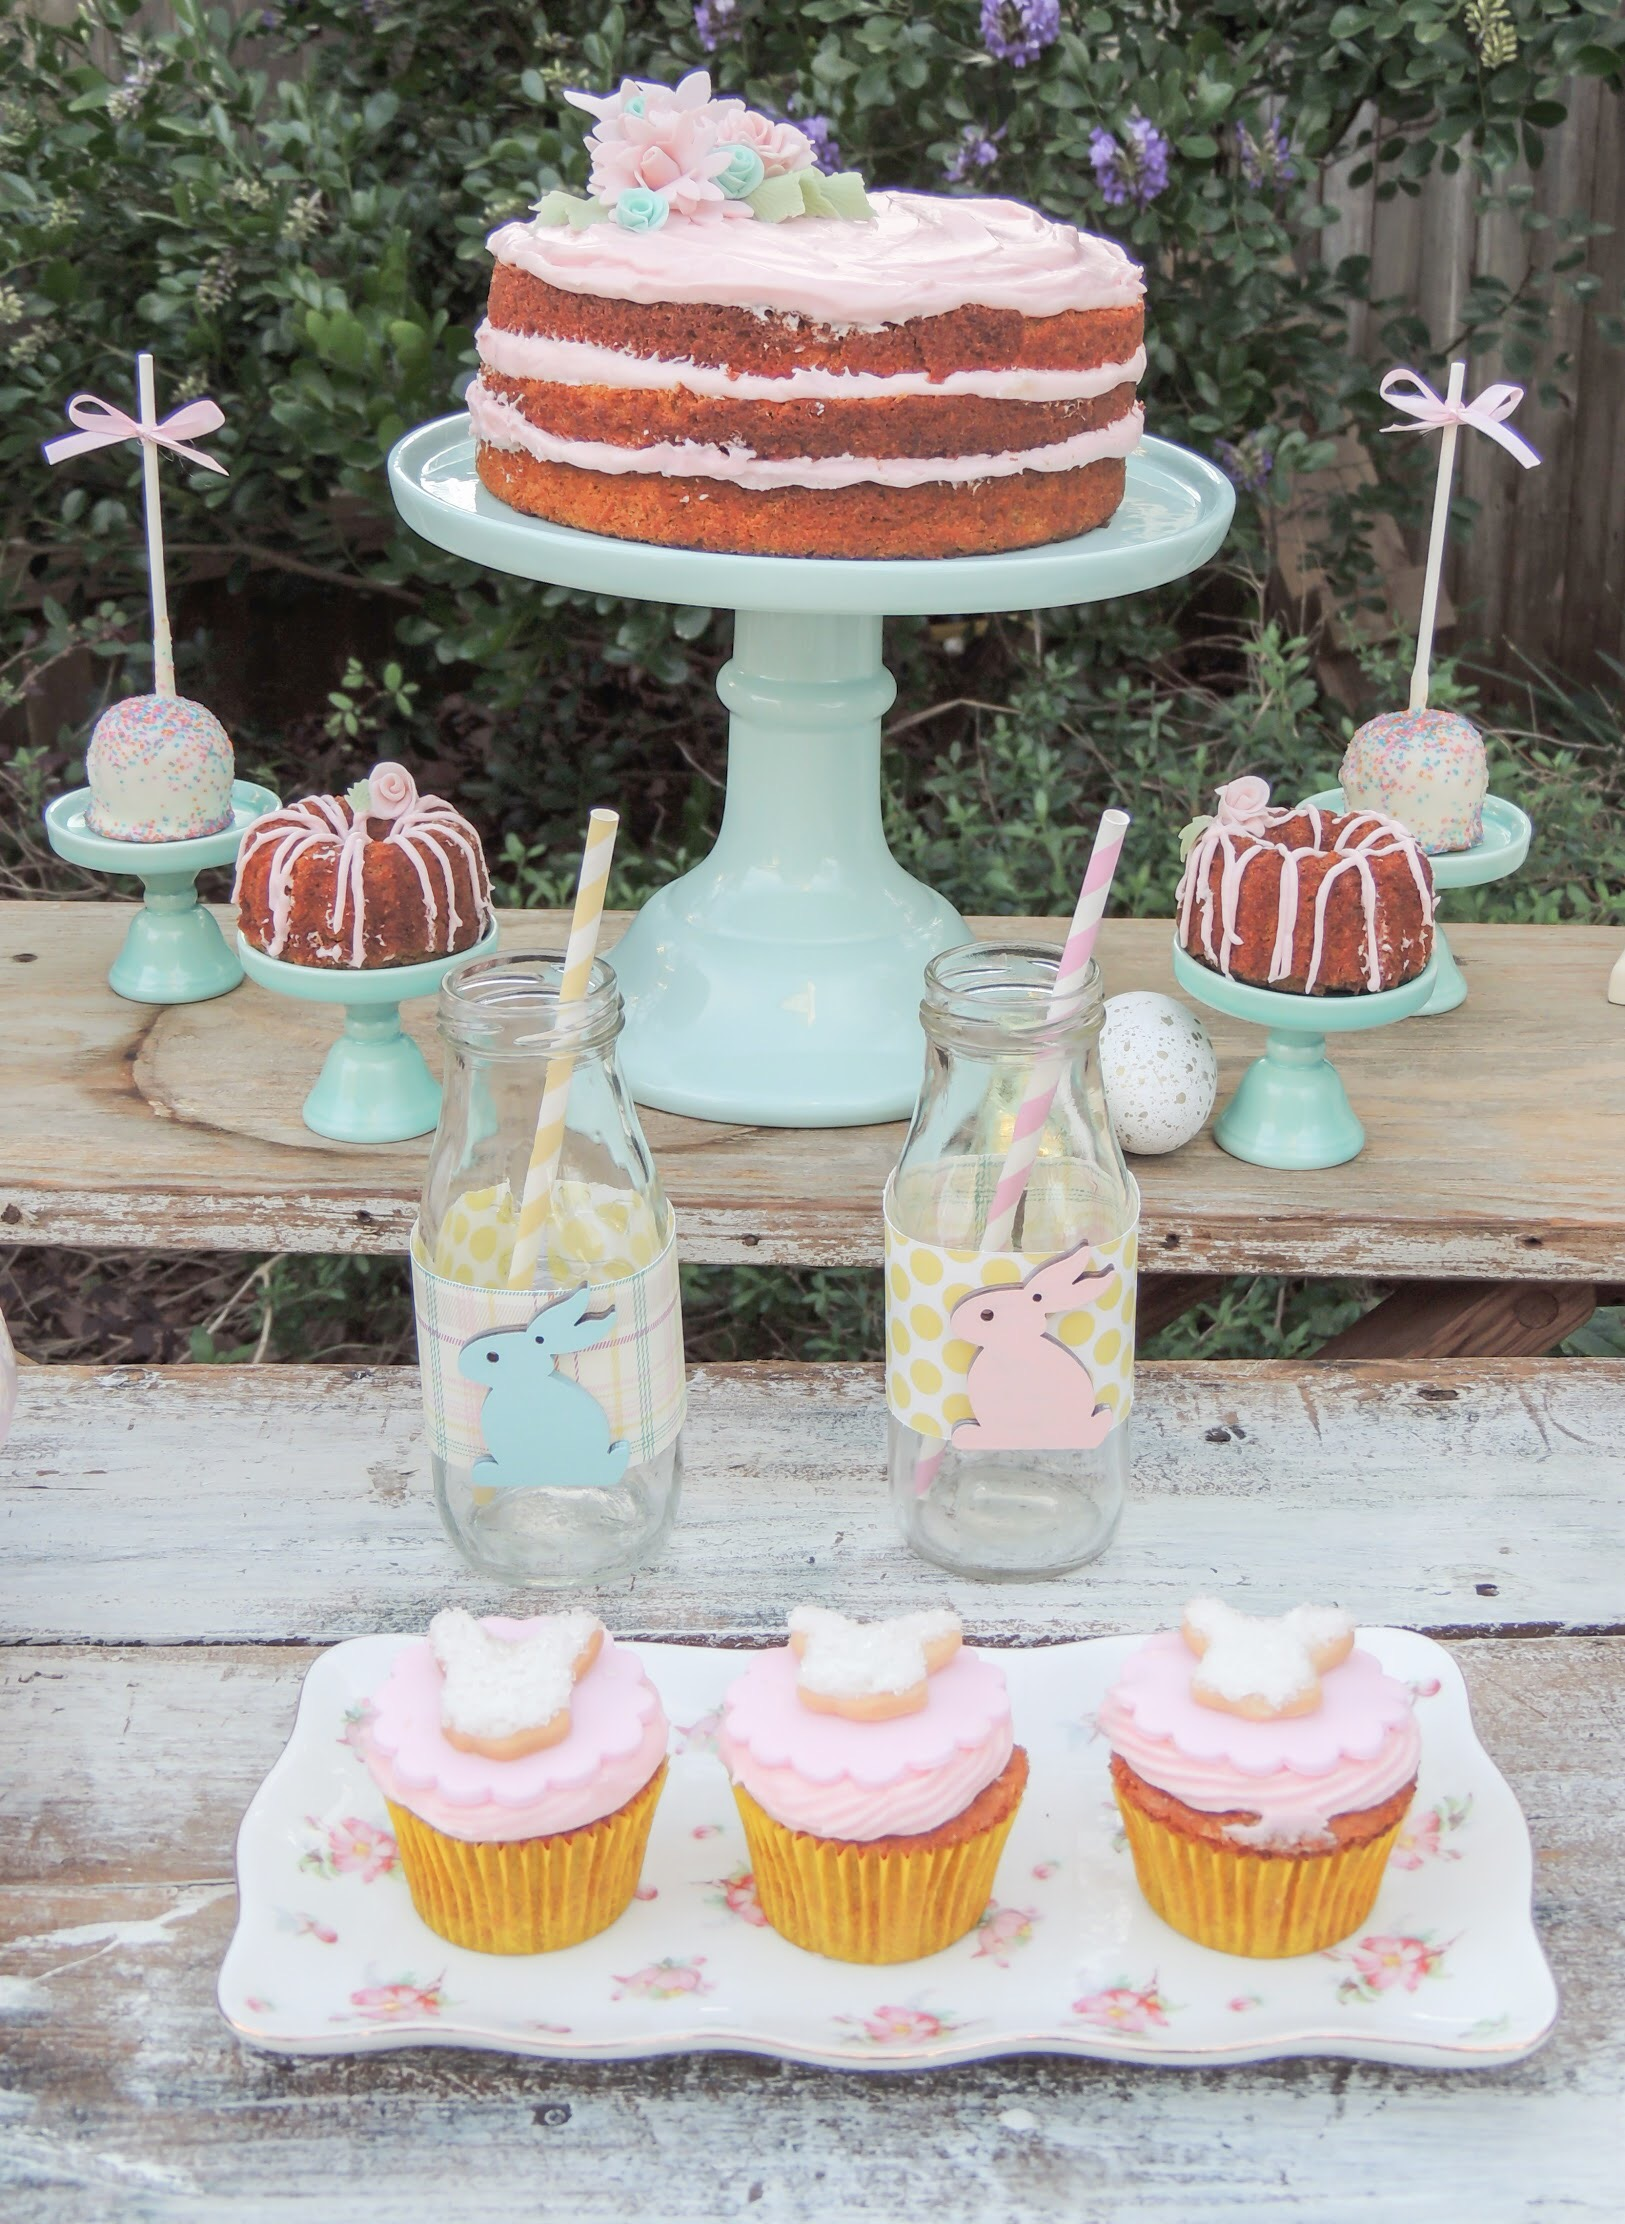 Vintage Easter celebration ideas with a frosted naked cake, bunny cupcakes and mini bundt cakes. As seen on Mint Event Design www.minteventdesign.com #eastertable #easterdecor #easterparty #partyideas #easterideas #shabbychic